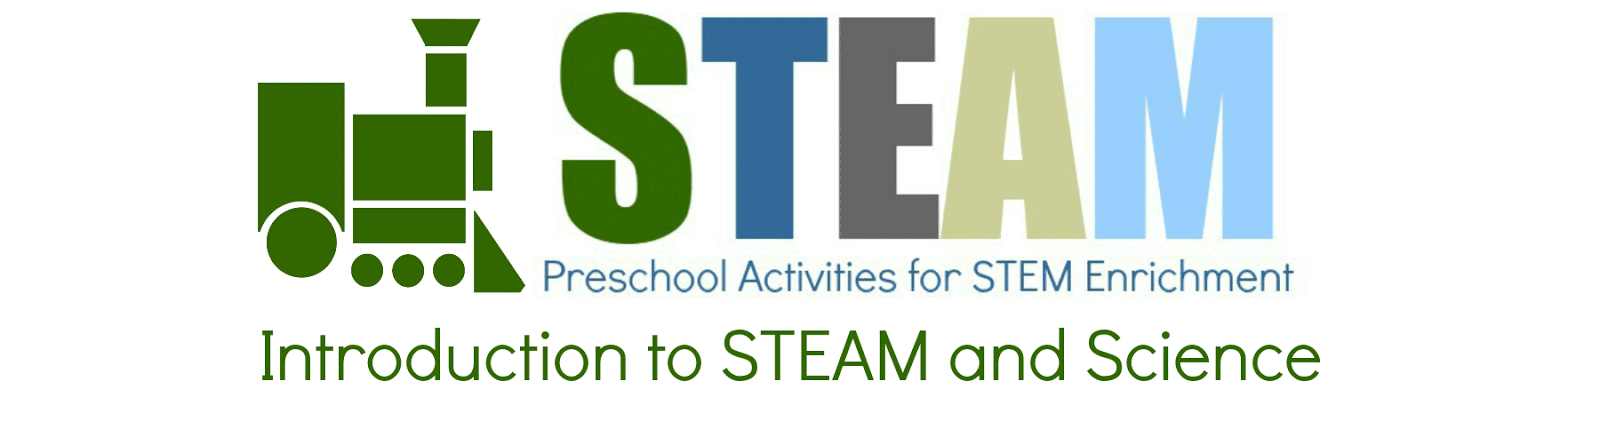 Introduction to STEAM and Science